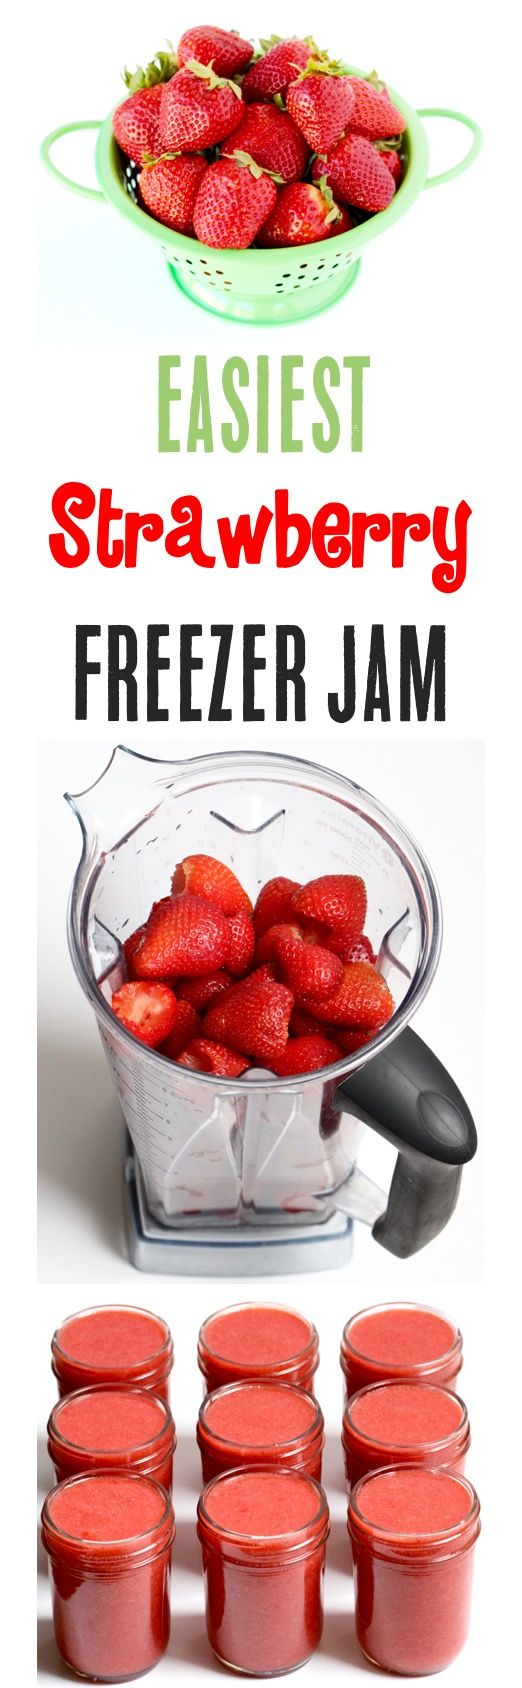 Freezer Jam Strawberry Simple Homemade Recipe!  The EASIEST jam you'll ever make, and so much better than store bought!  Stock your freezer with yummy jam and give some as fun Gifts in a Jar! | TheFrugalGirls.com